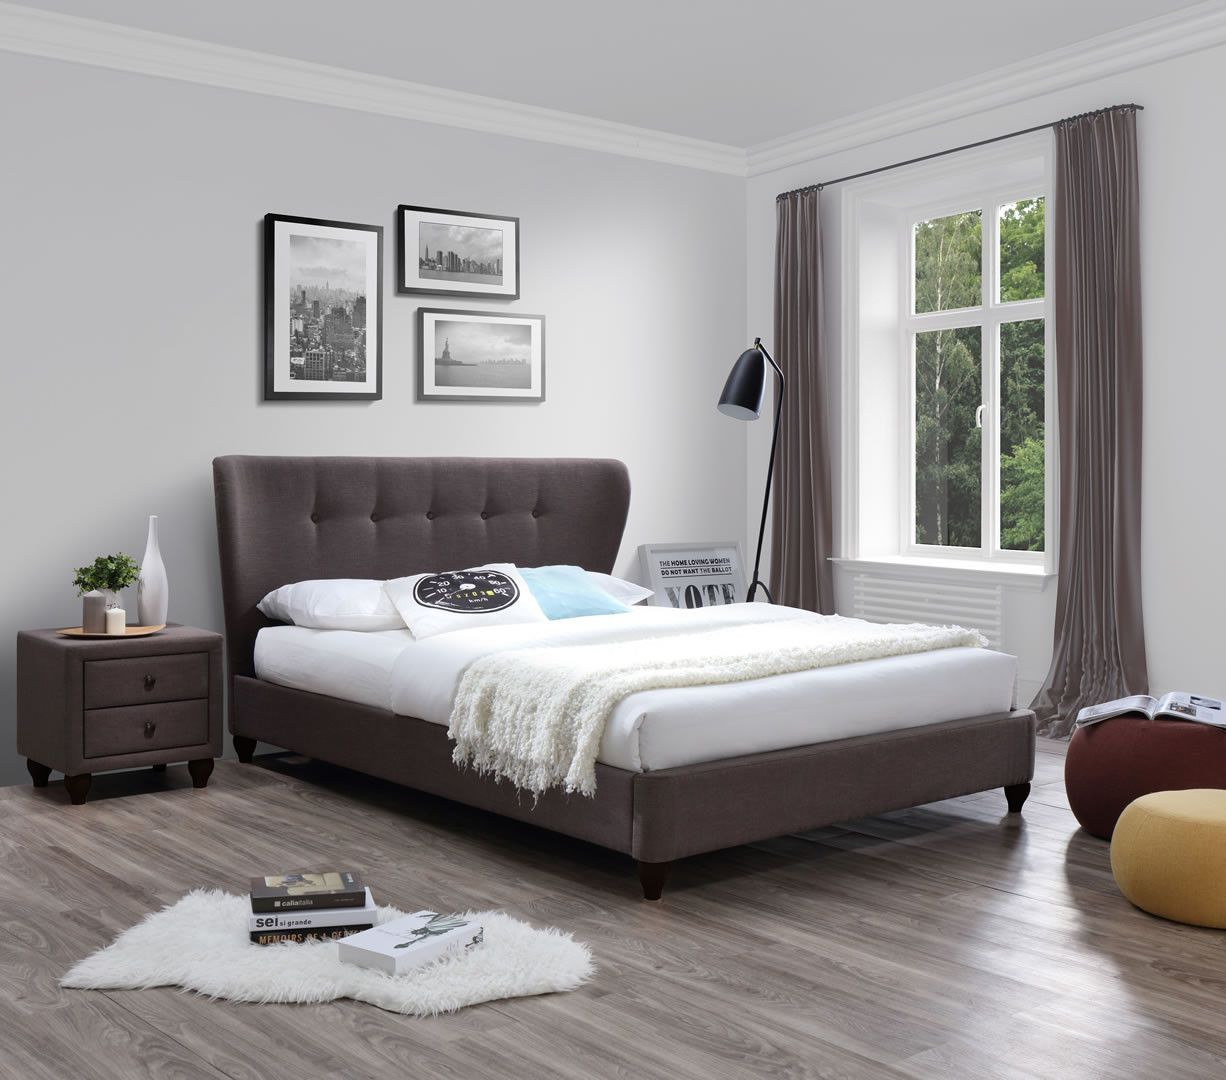 lits doubles lit double en tissu brun 160 cm avec sommier et t te de lit incurv e pomona trocity. Black Bedroom Furniture Sets. Home Design Ideas